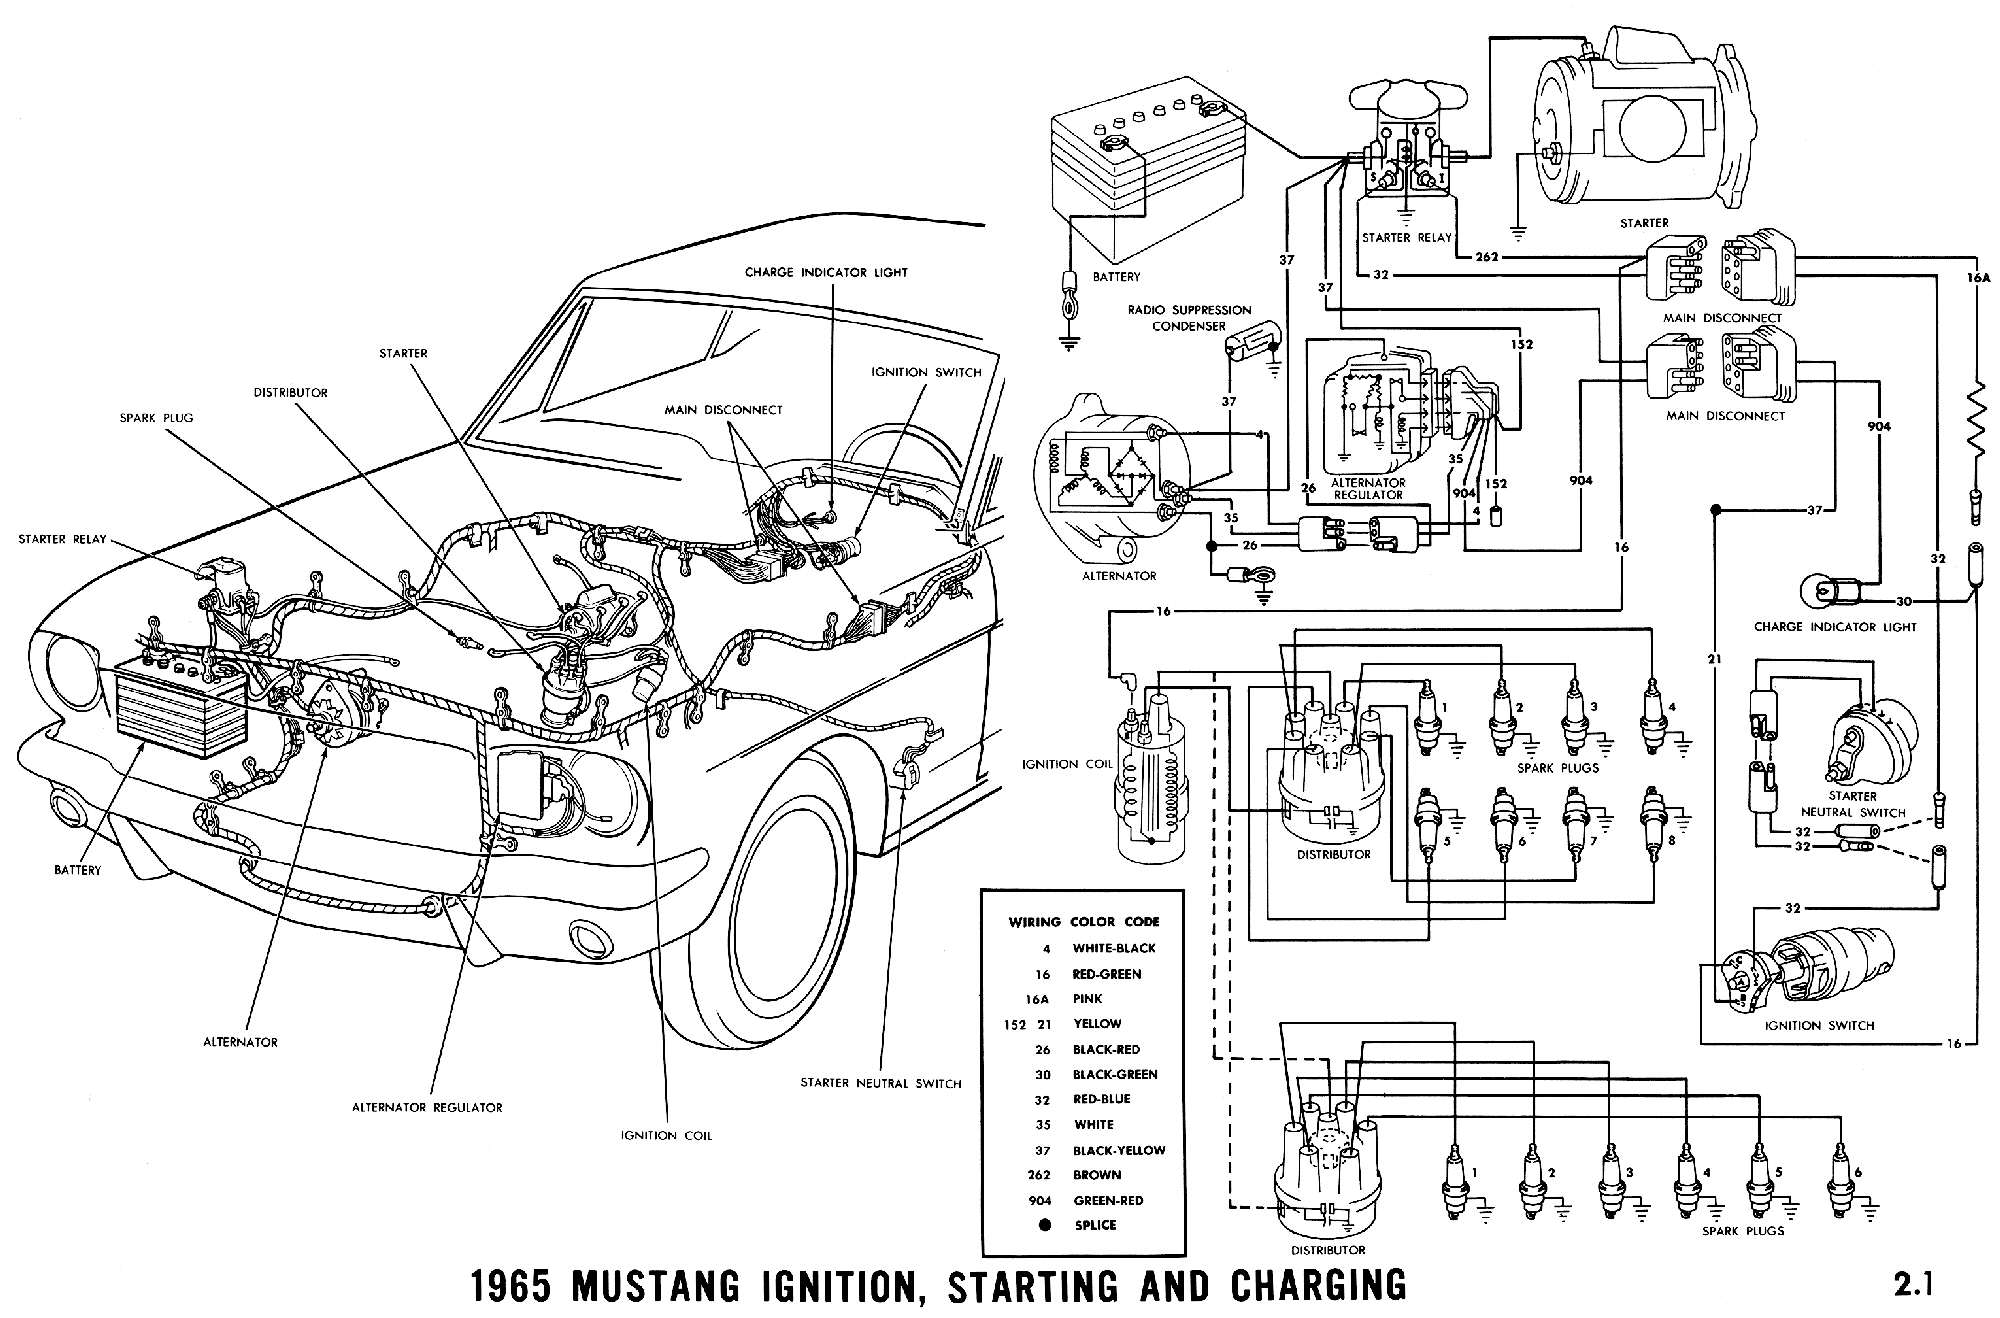 1965c 1965 mustang wiring diagrams average joe restoration engine wiring diagram at crackthecode.co